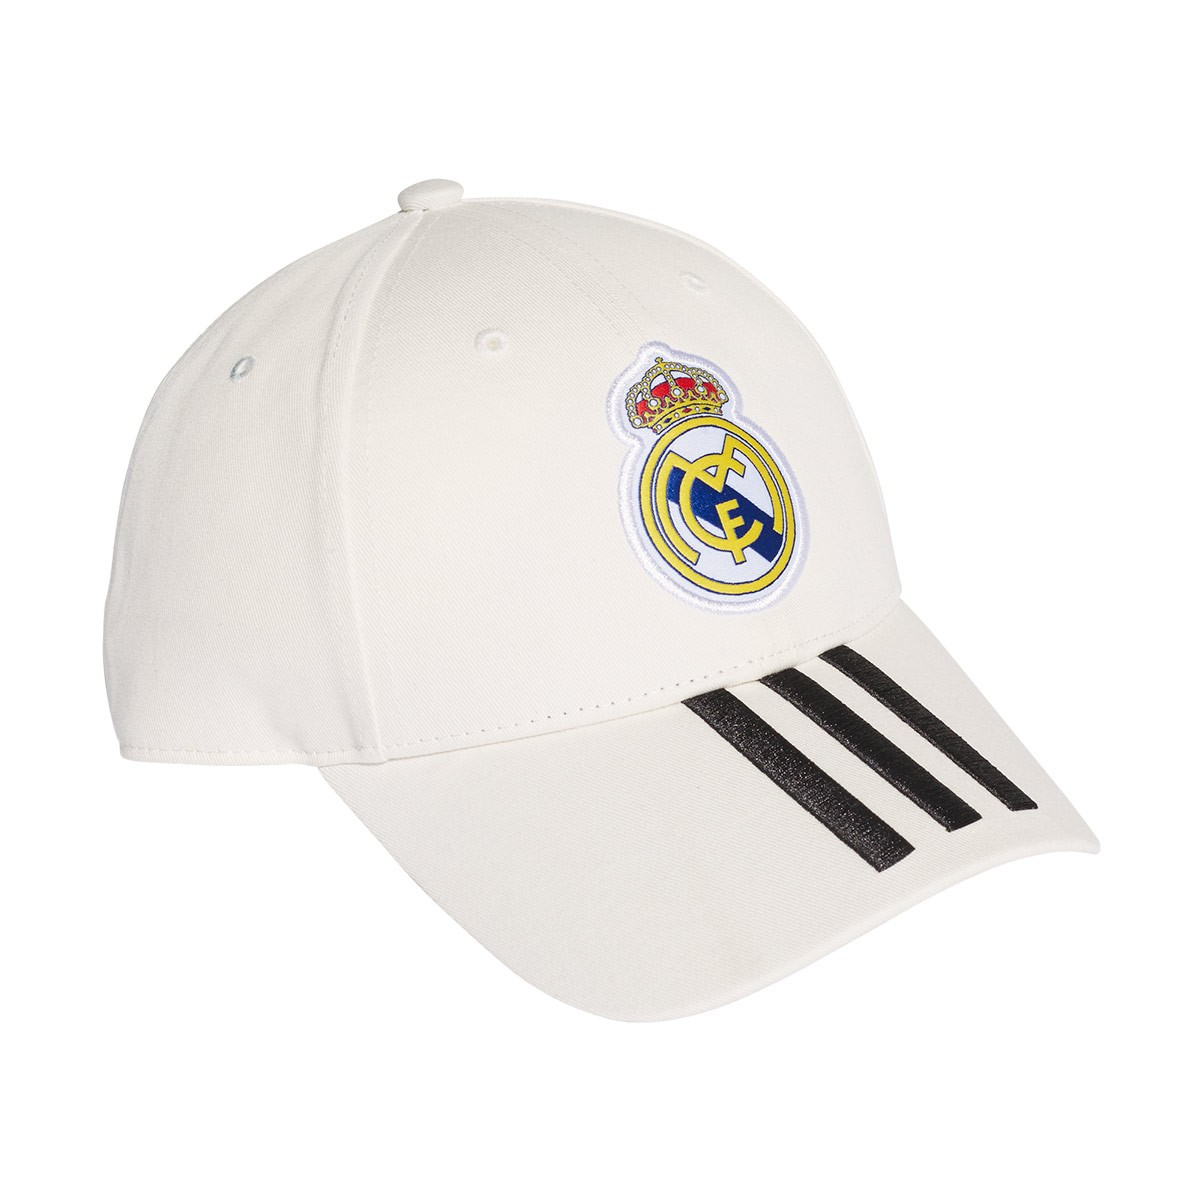 cd36cc88 Cap adidas Real Madrid 3S 2018-2019 White-Black - Football store ...